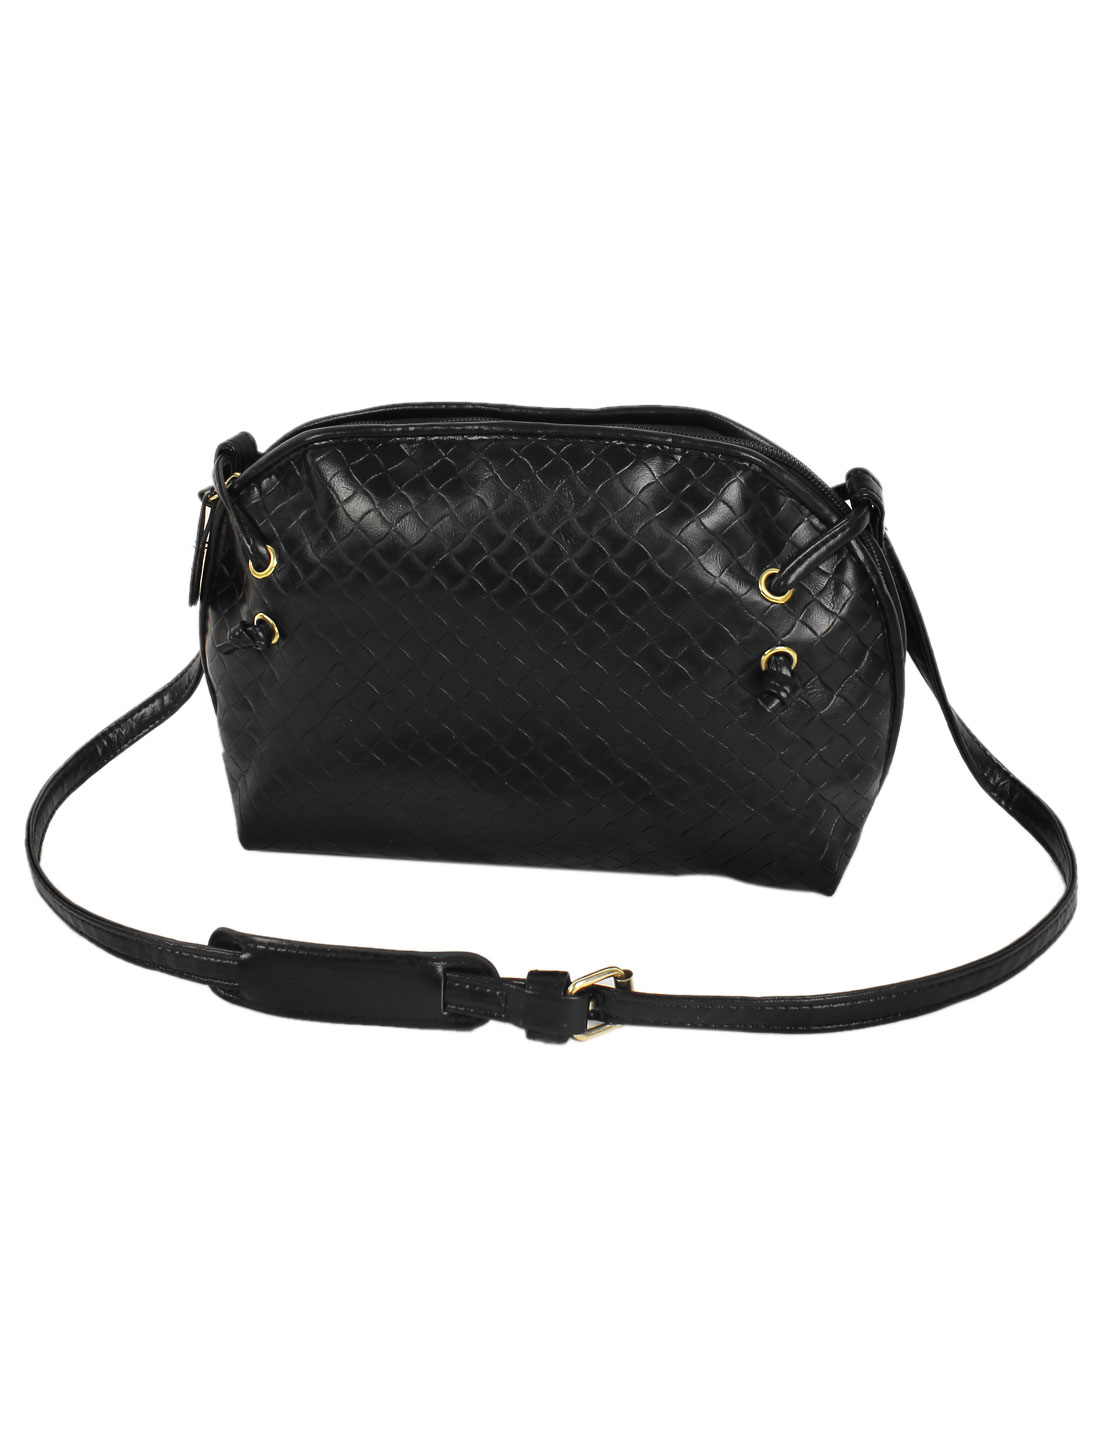 Women PU Tote Satchel Messenger Bag Casual Purse Cross Body Shoulder Handbag Black